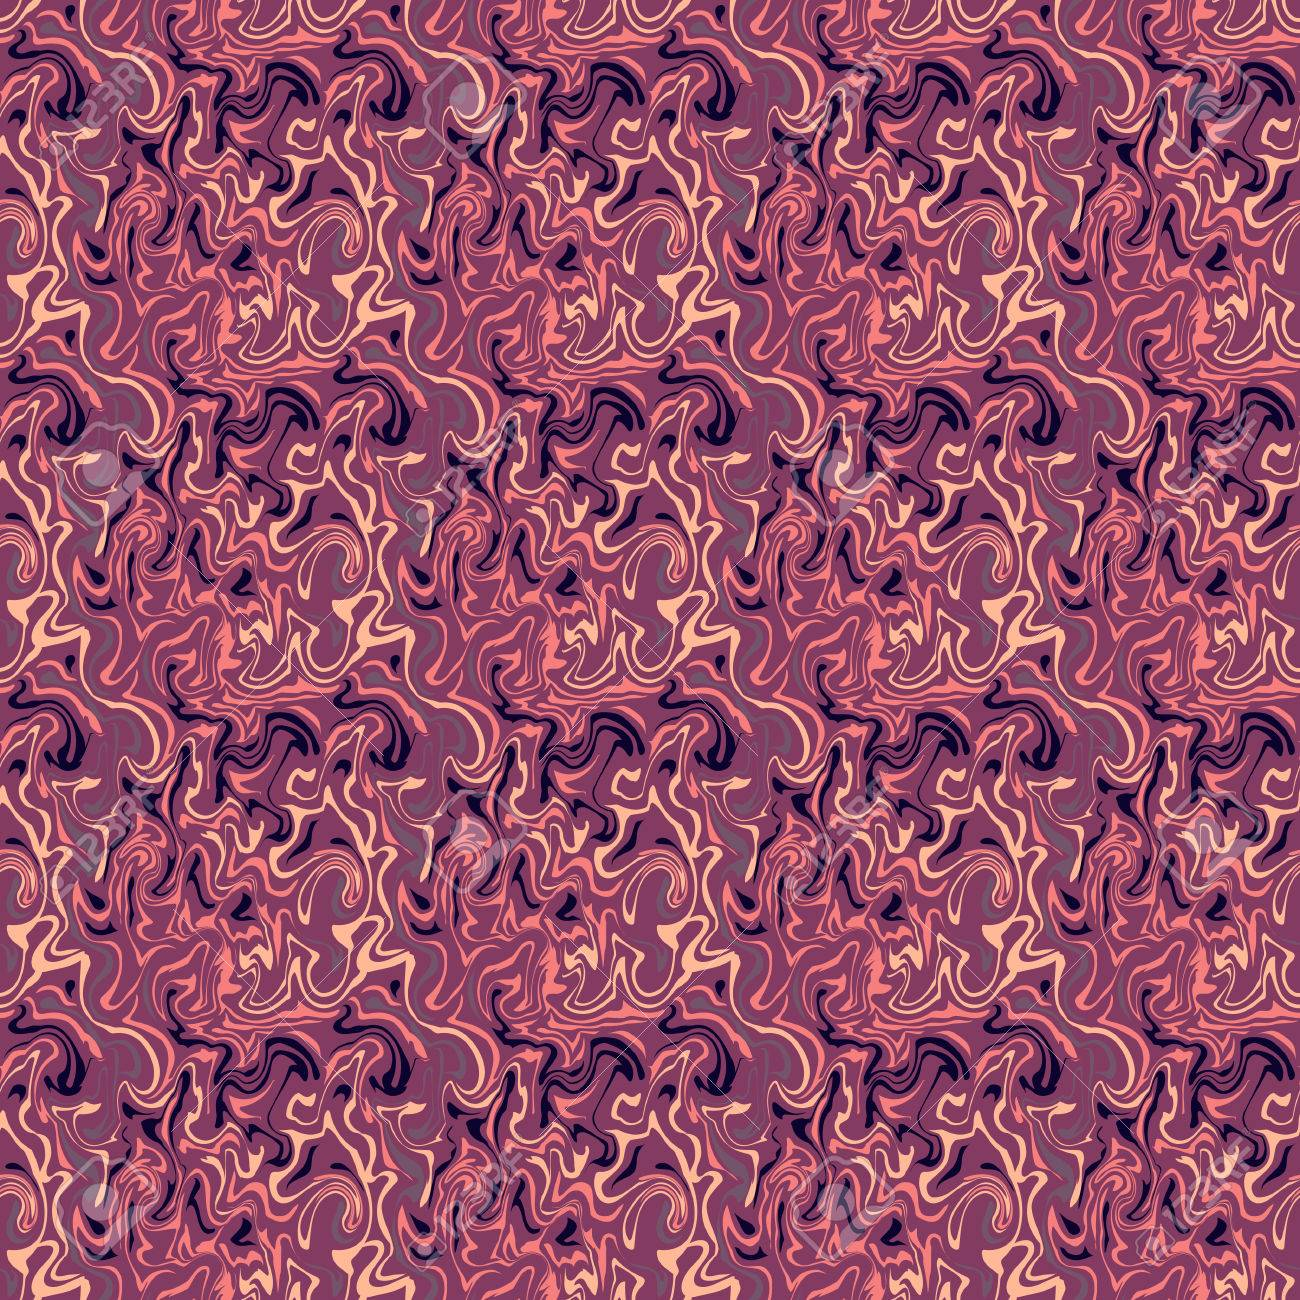 Amazing Wallpaper Marble Paper - 62789070-vector-stylization-ofpurple-marble-paper-seamless-pattern-texture-for-web-print-wallpaper-summer-spr  Graphic_43223.jpg